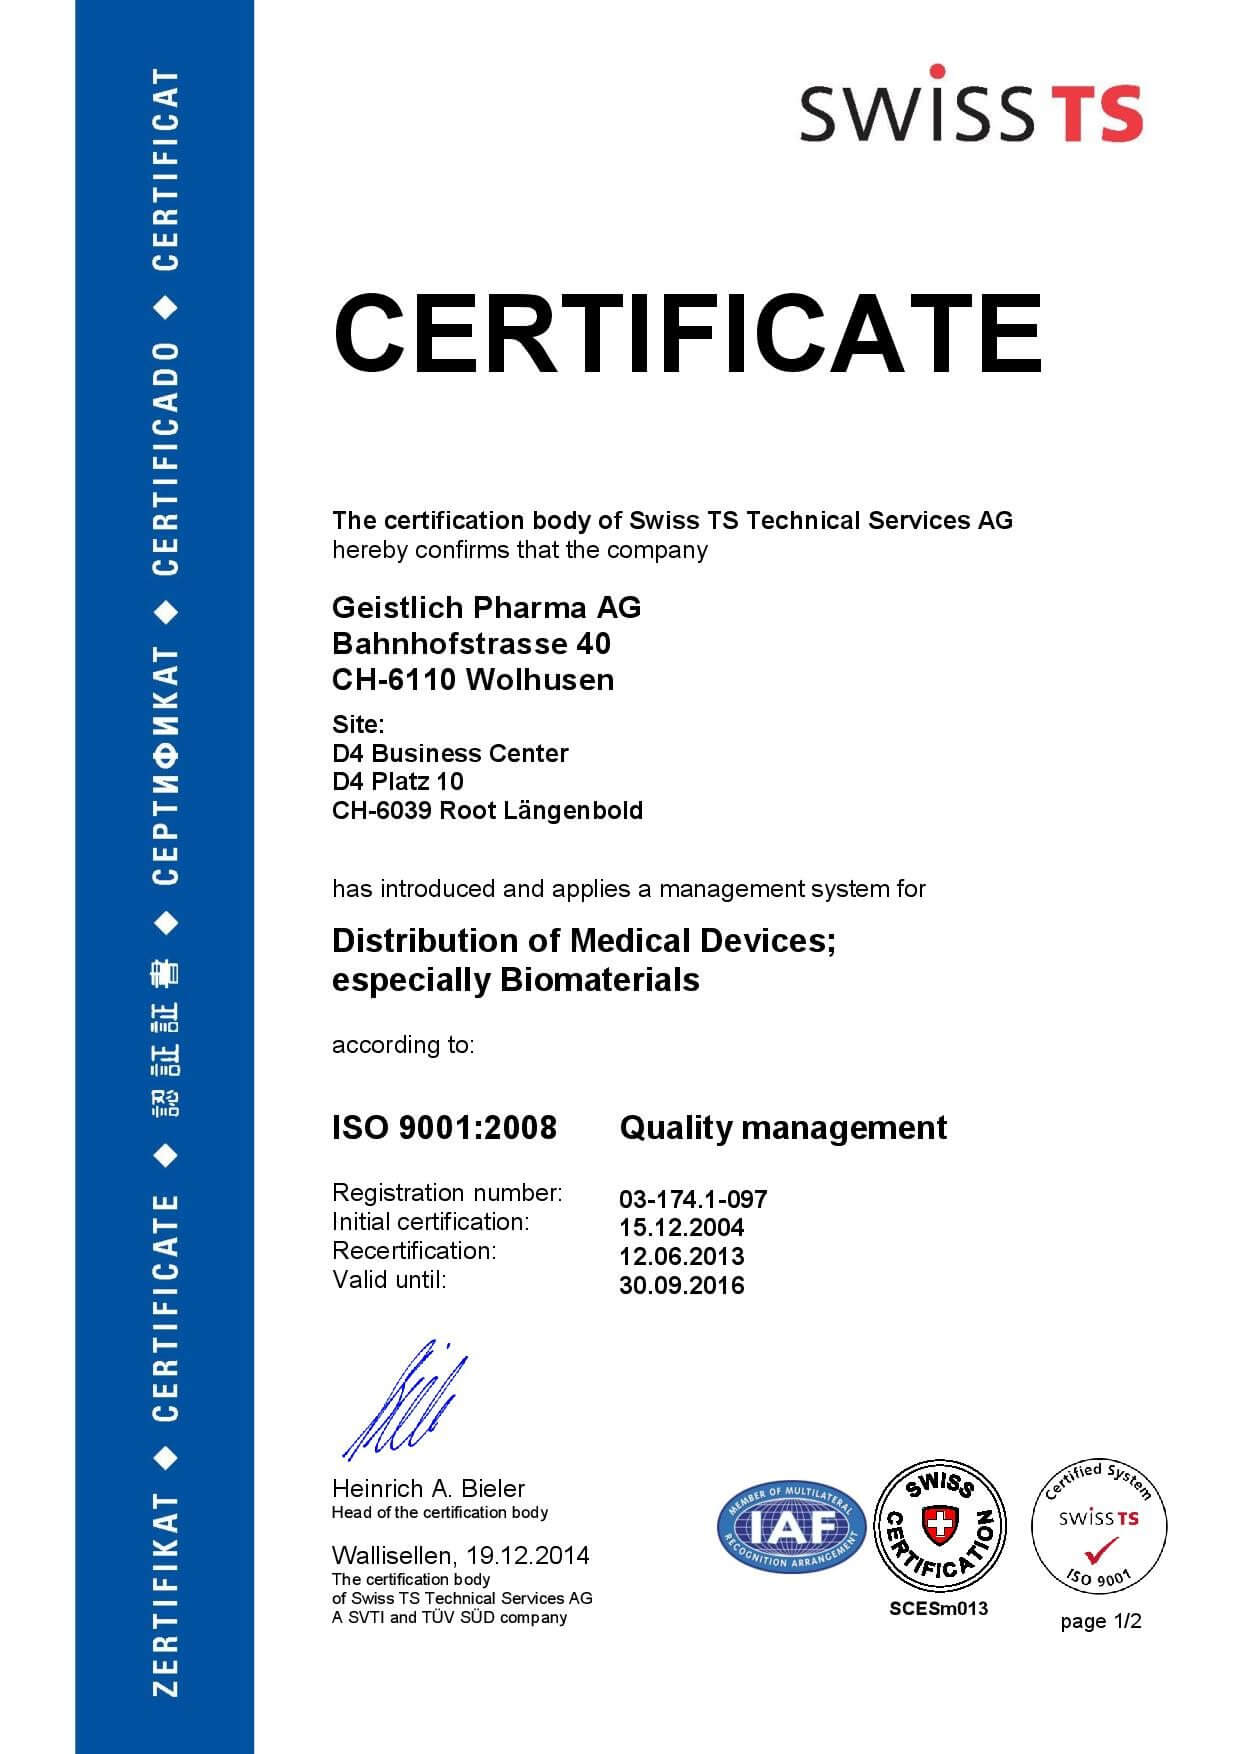 iso-9001-certificate-multi-site-geistlich-pharma-ag-quality-management-english-page-001